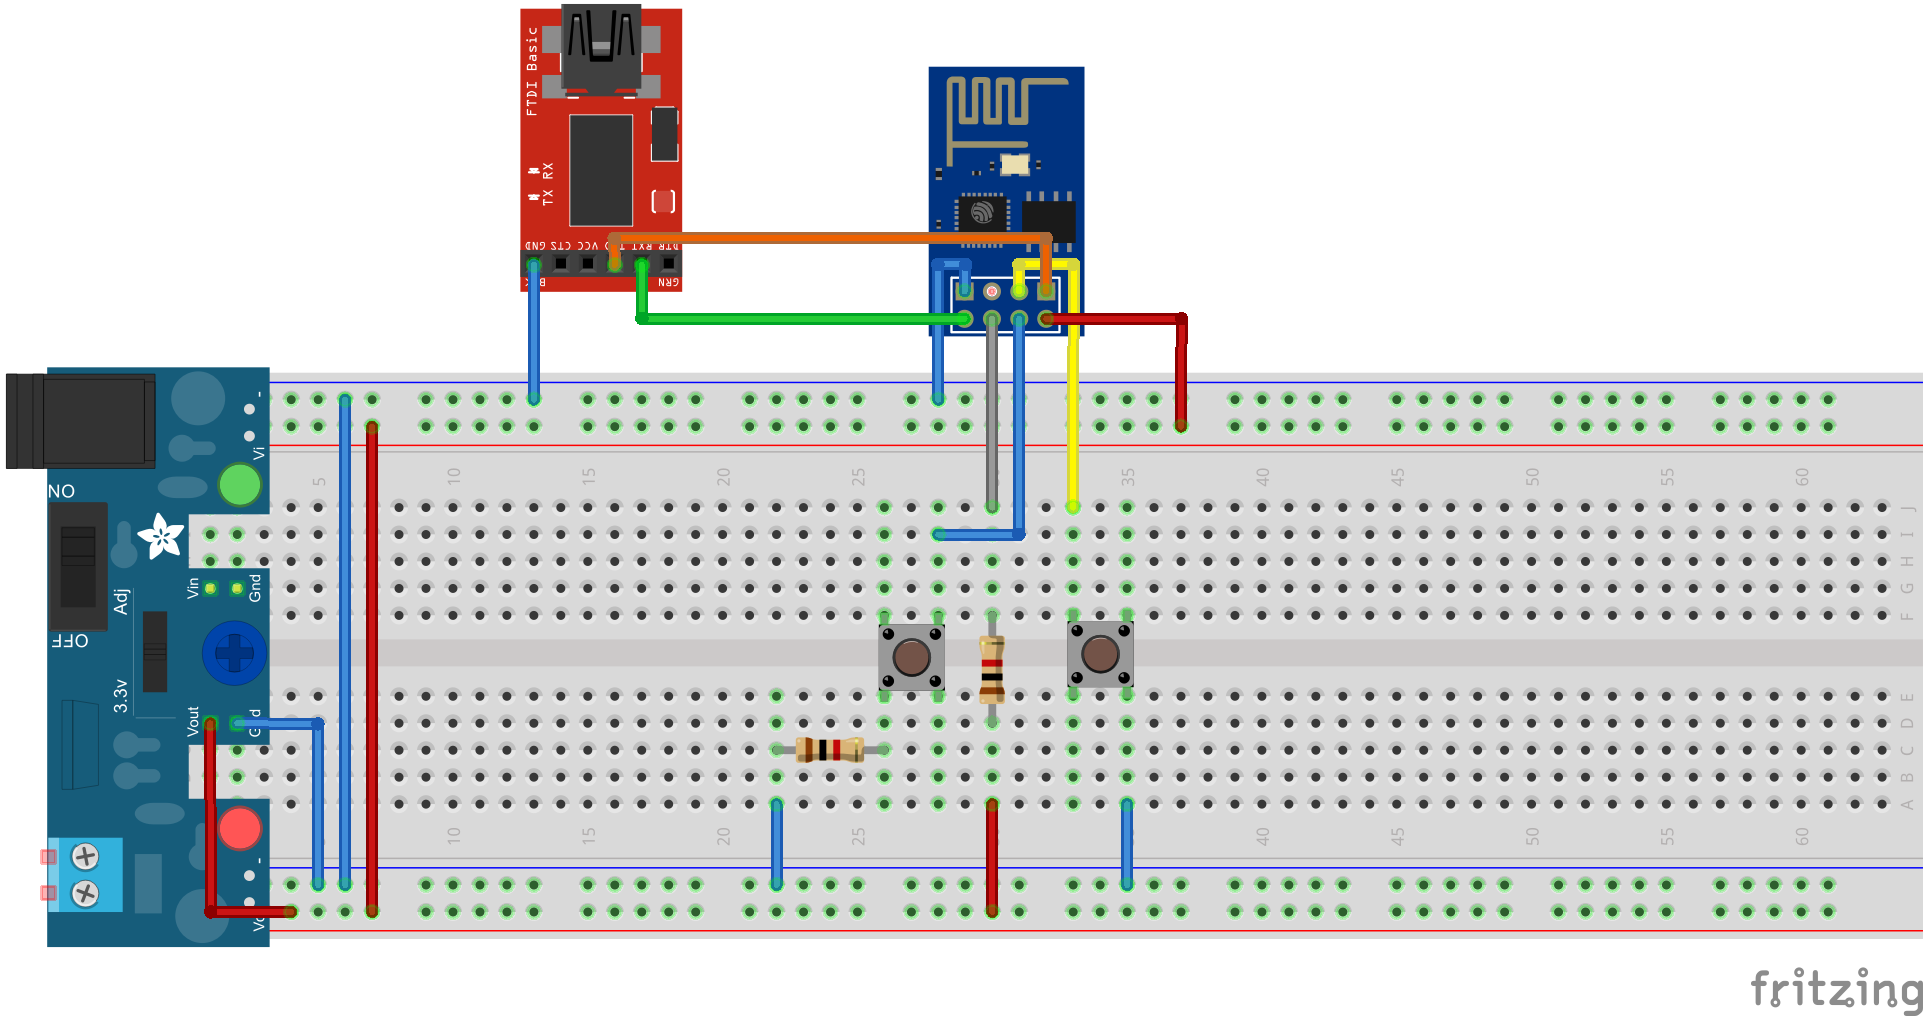 28byj 48 stepper motor control system based on arduino for Stepper motor control system